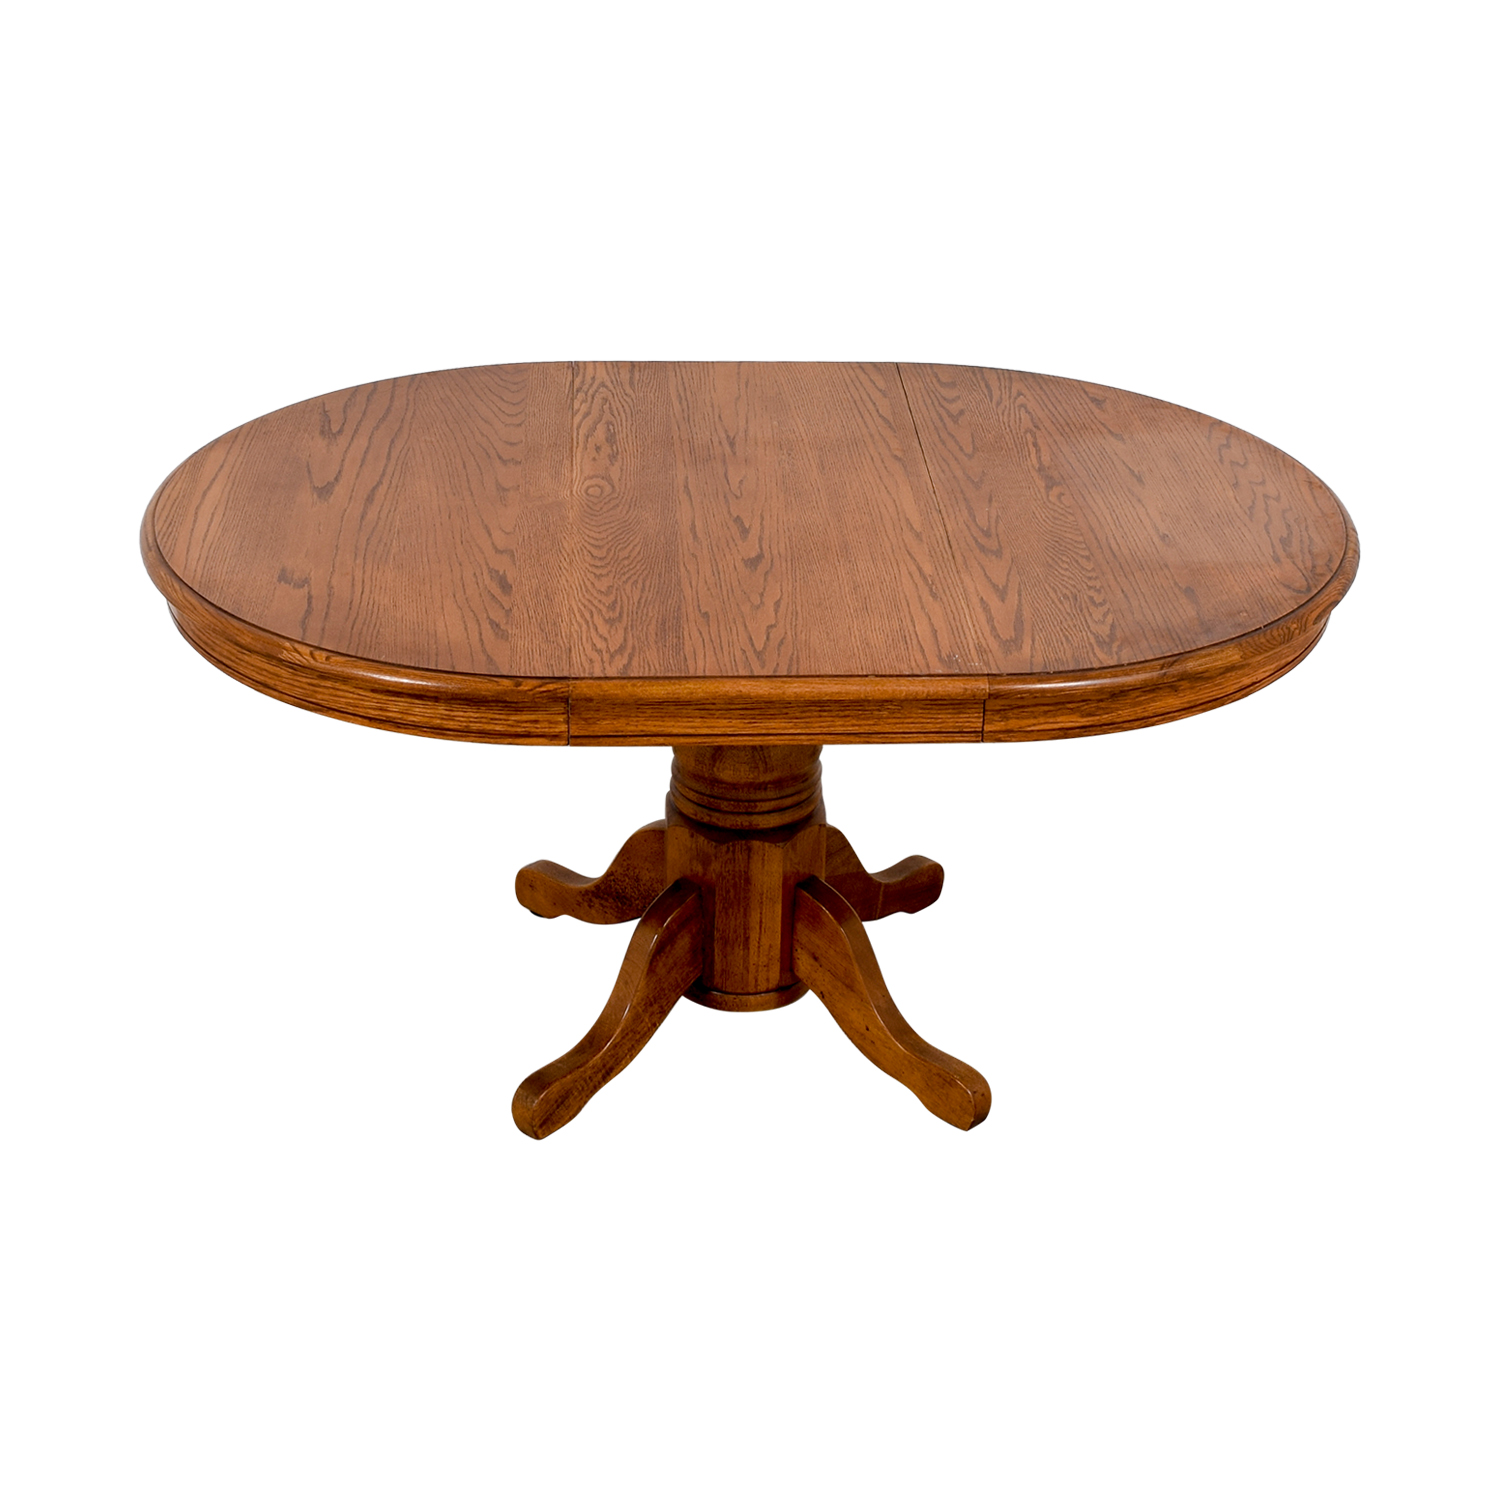 shop Poundex Poundex Round Wood Extendable Dining Table online